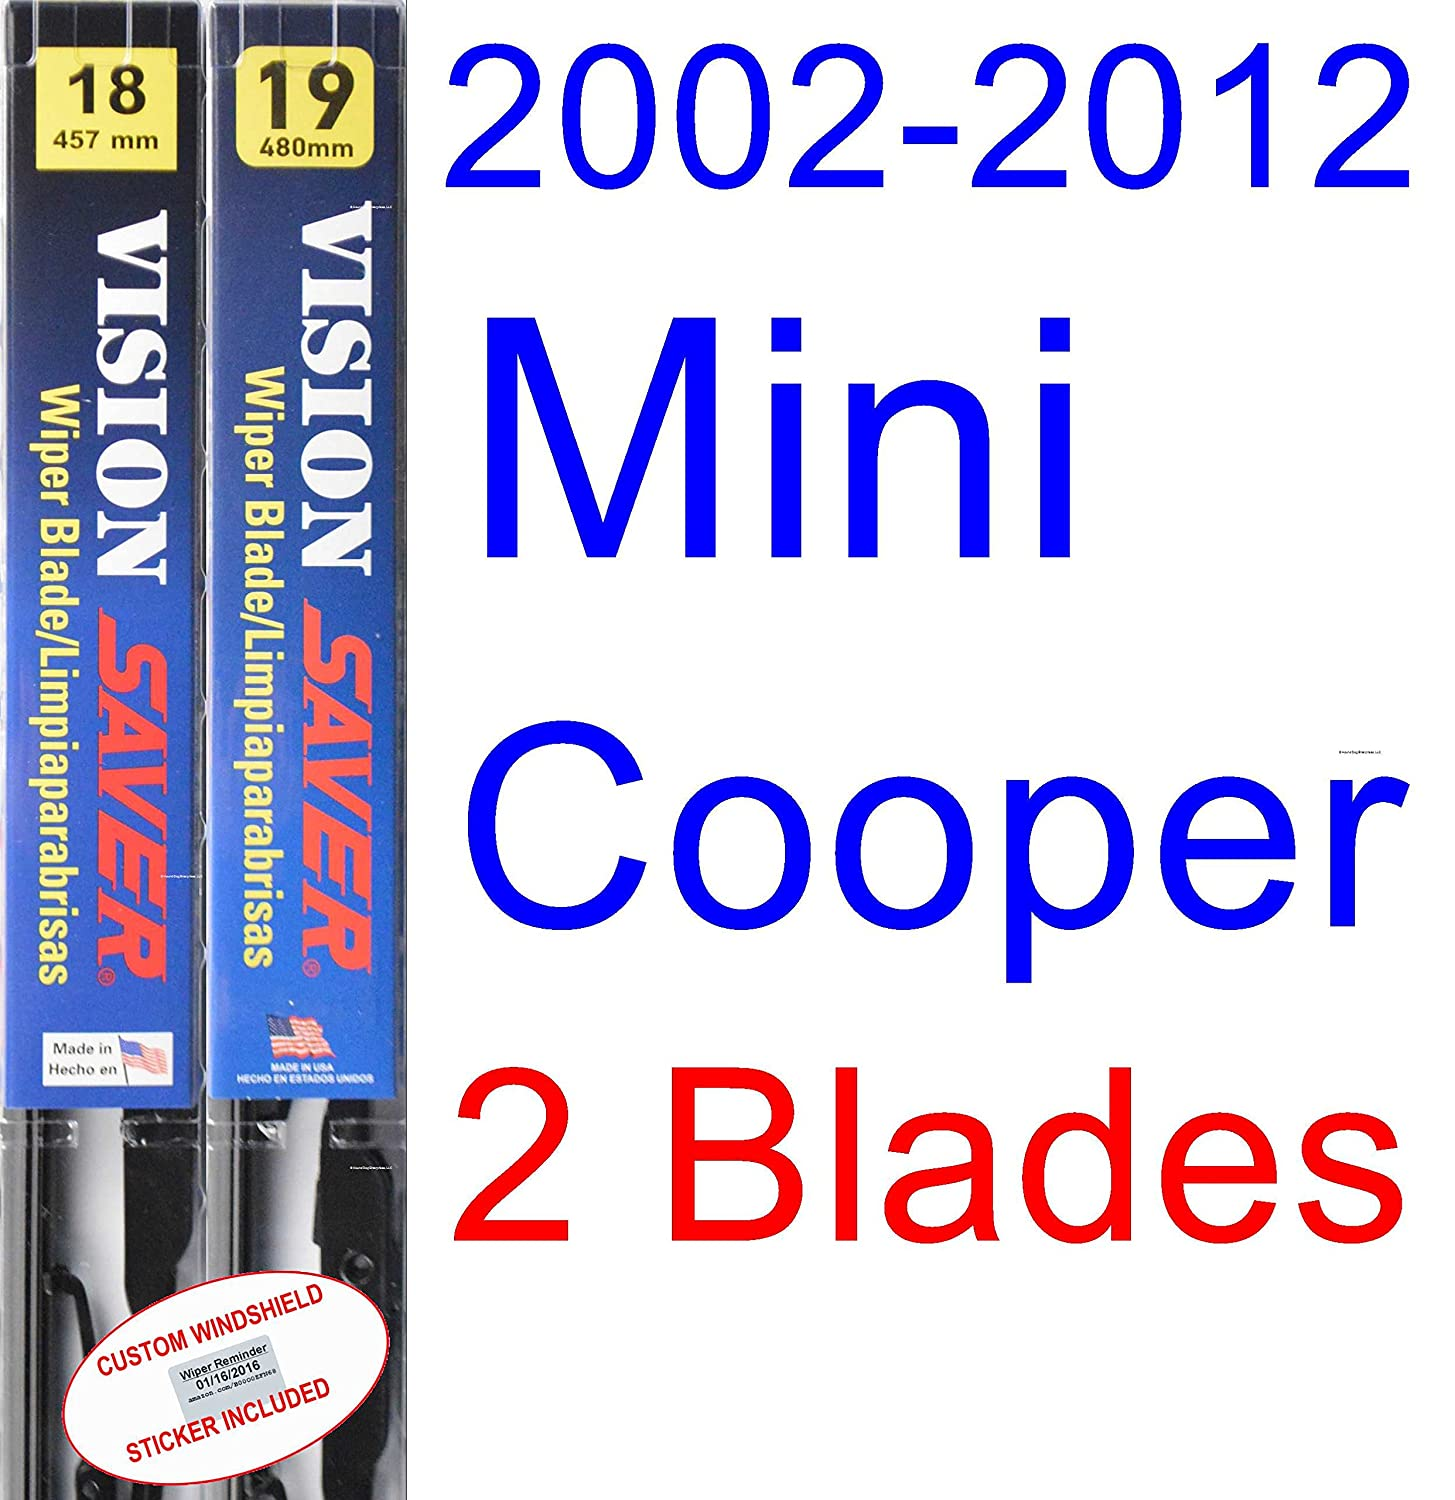 2002-2012 Mini Cooper Replacement Wiper Blade Set/Kit (Set of 2 Blades) (Saver Automotive Products-Vision Saver) (2003,2004,2005,2006,2007,2008,2009,2010 ...